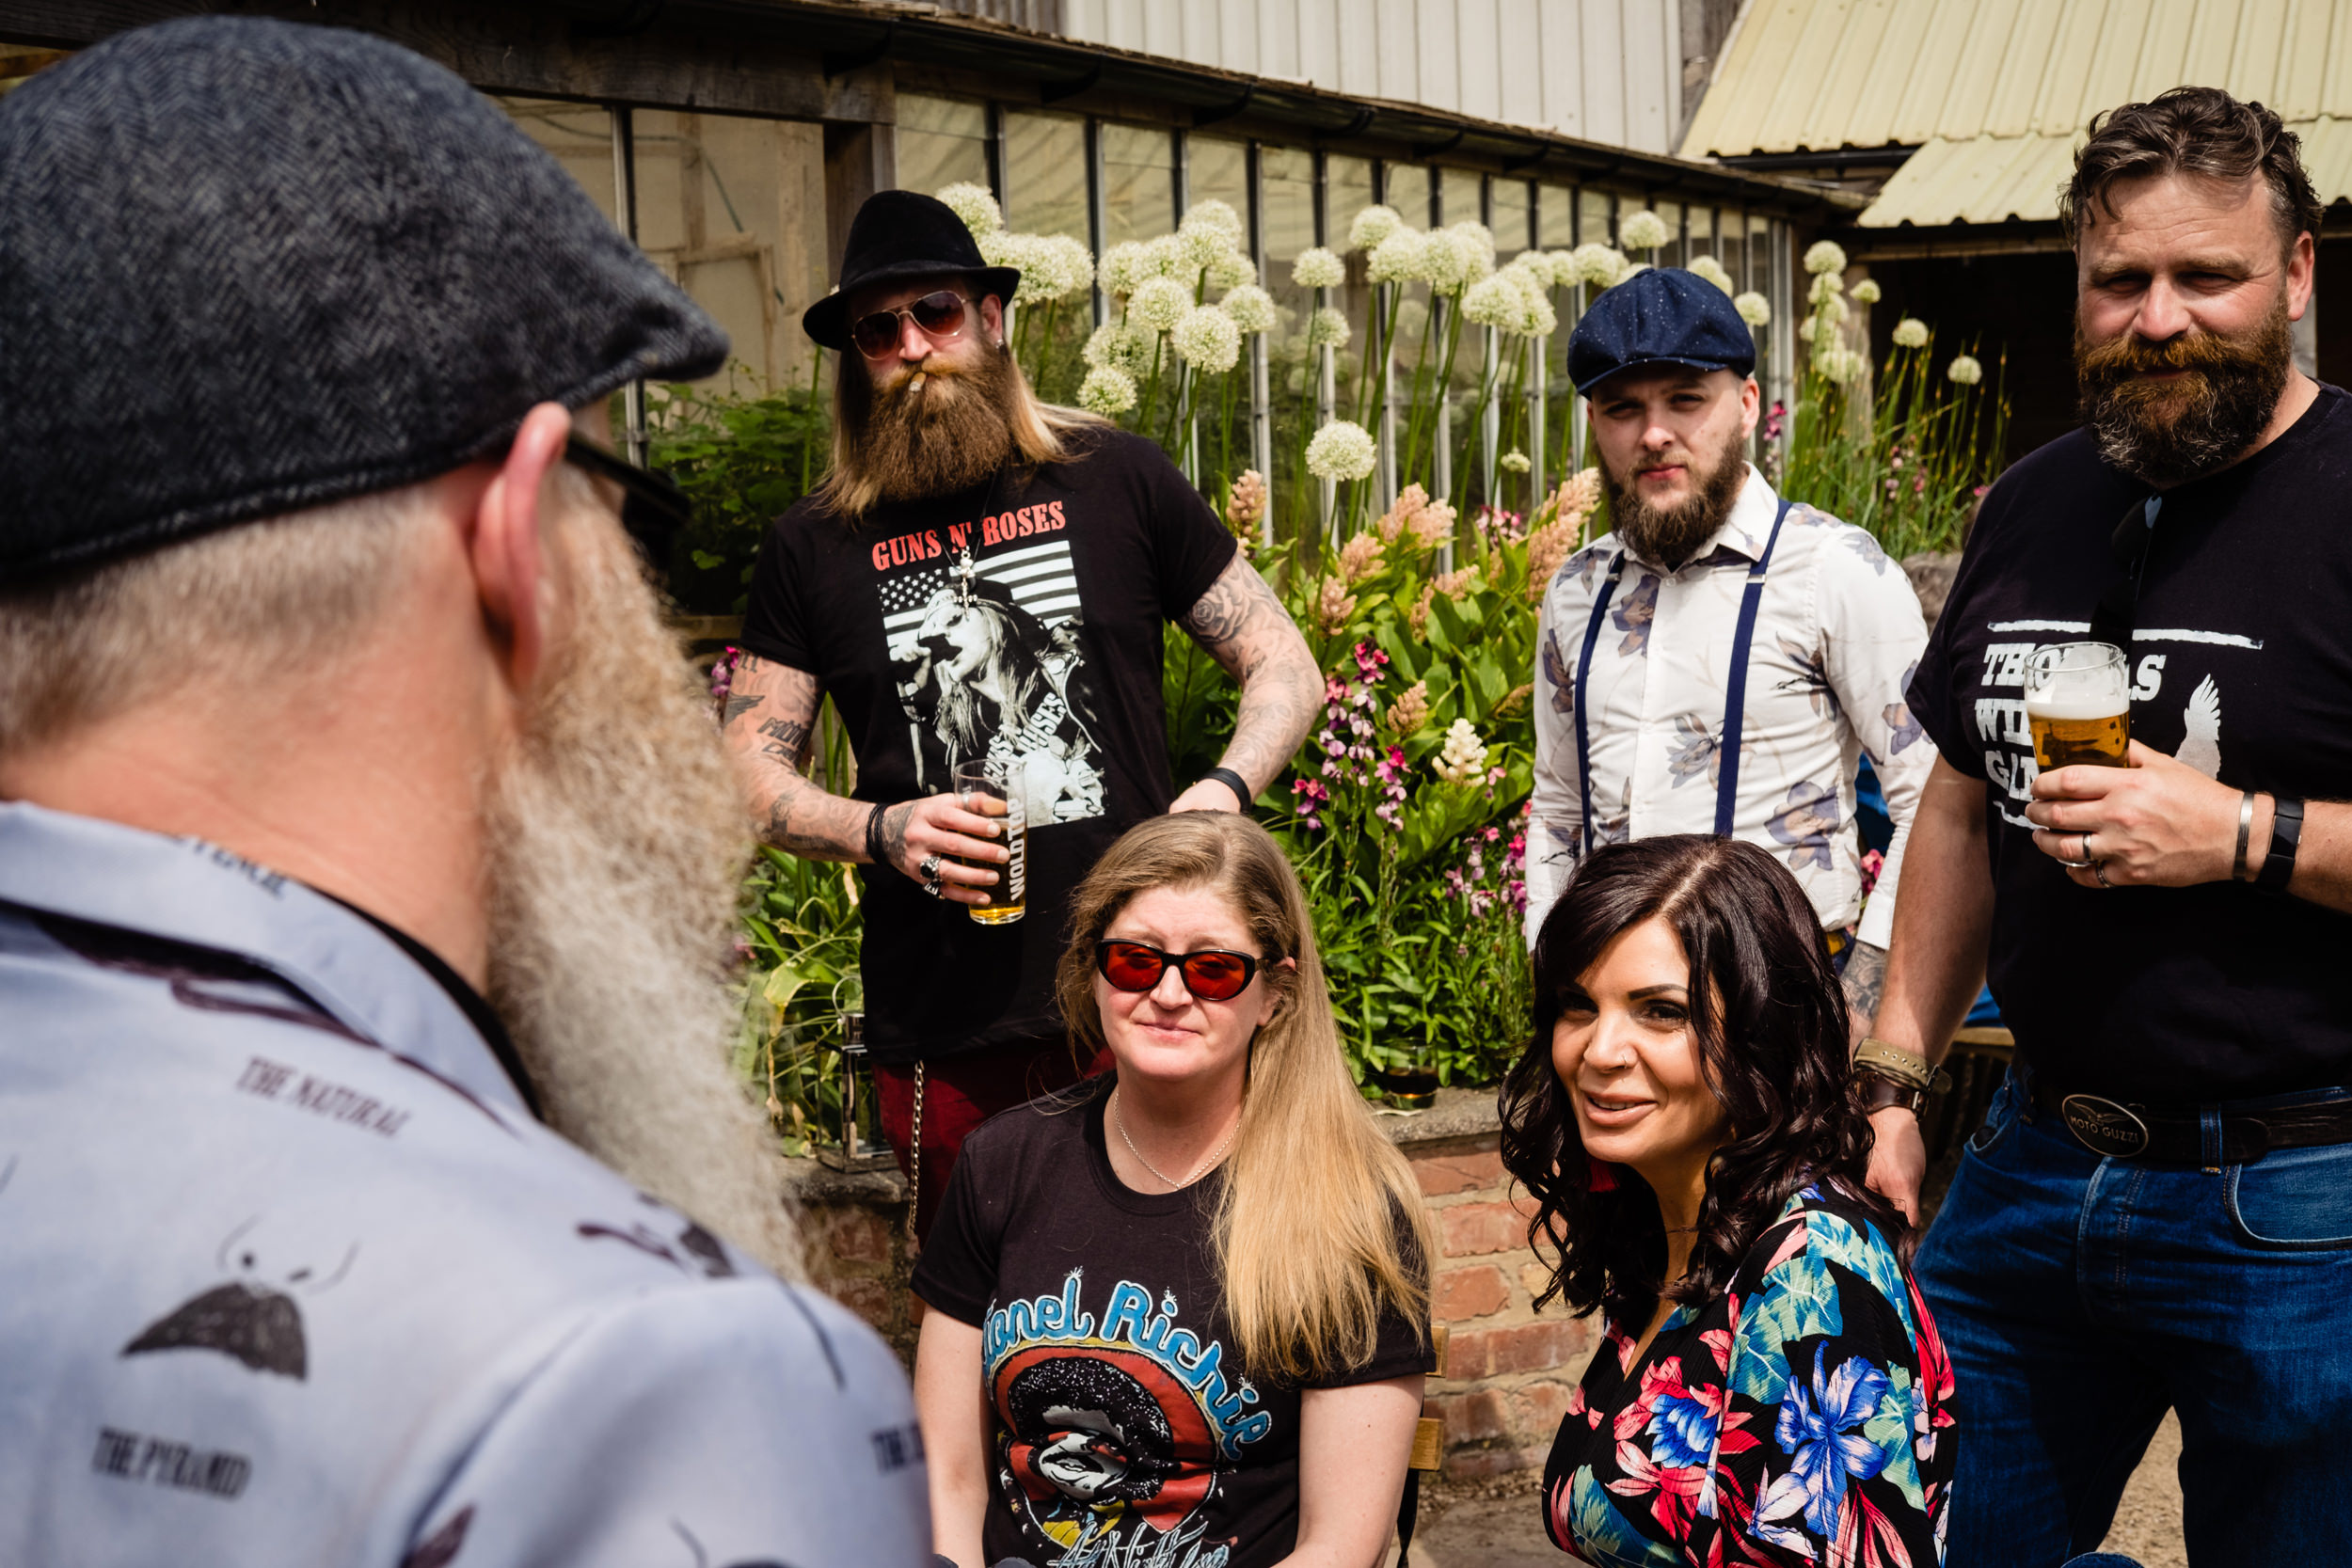 a group of wedding guests with beards and band t-shirts talk to the groom.